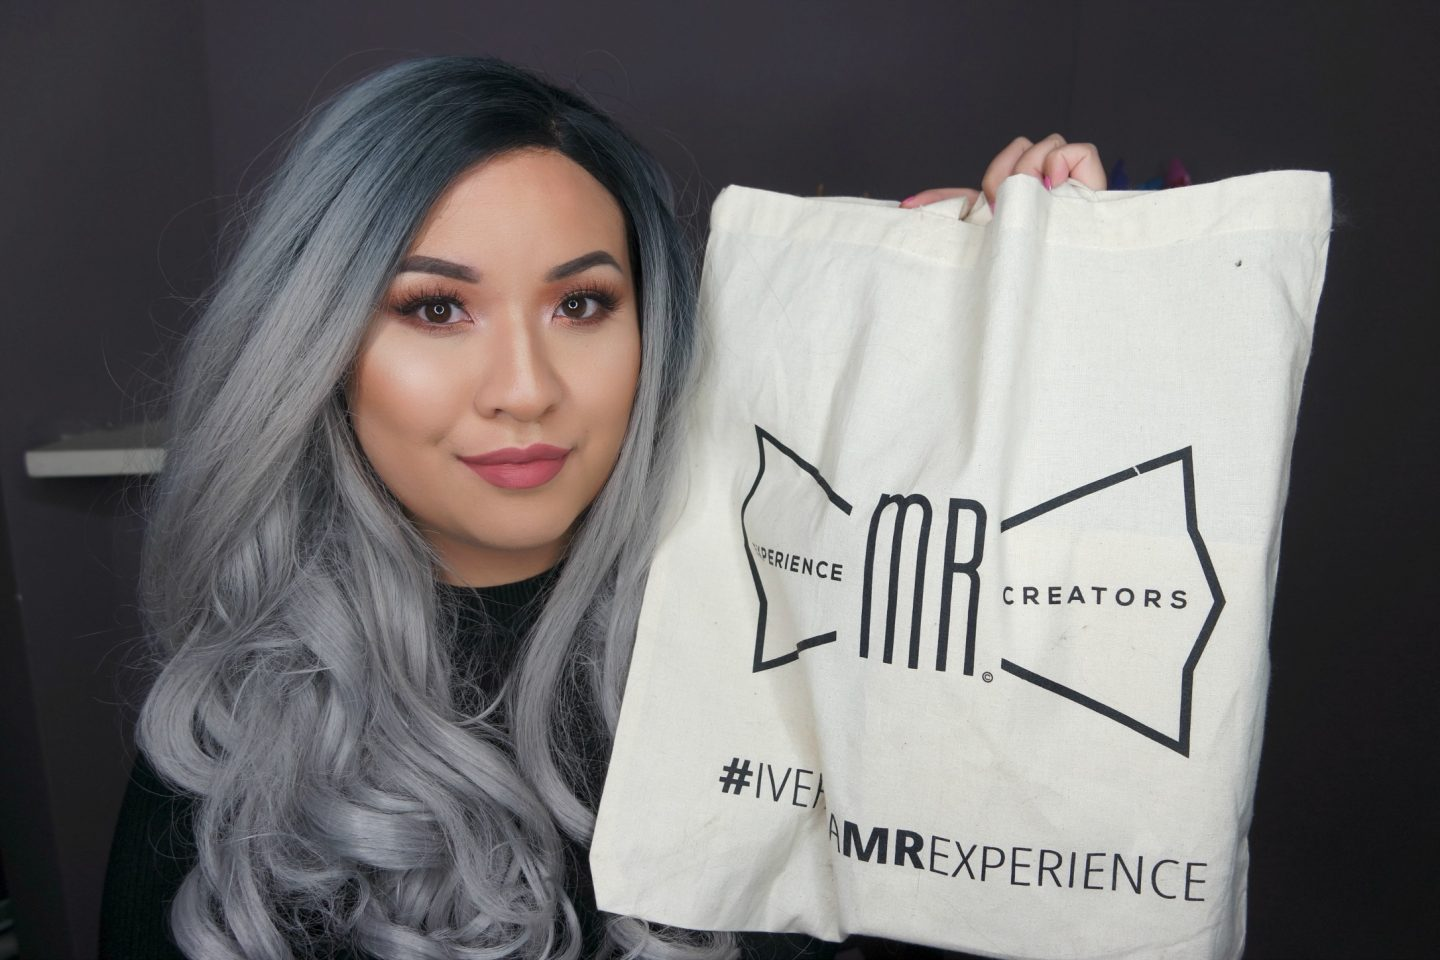 Mr. Experience Event – De Proefparade Beauty Collection 2017